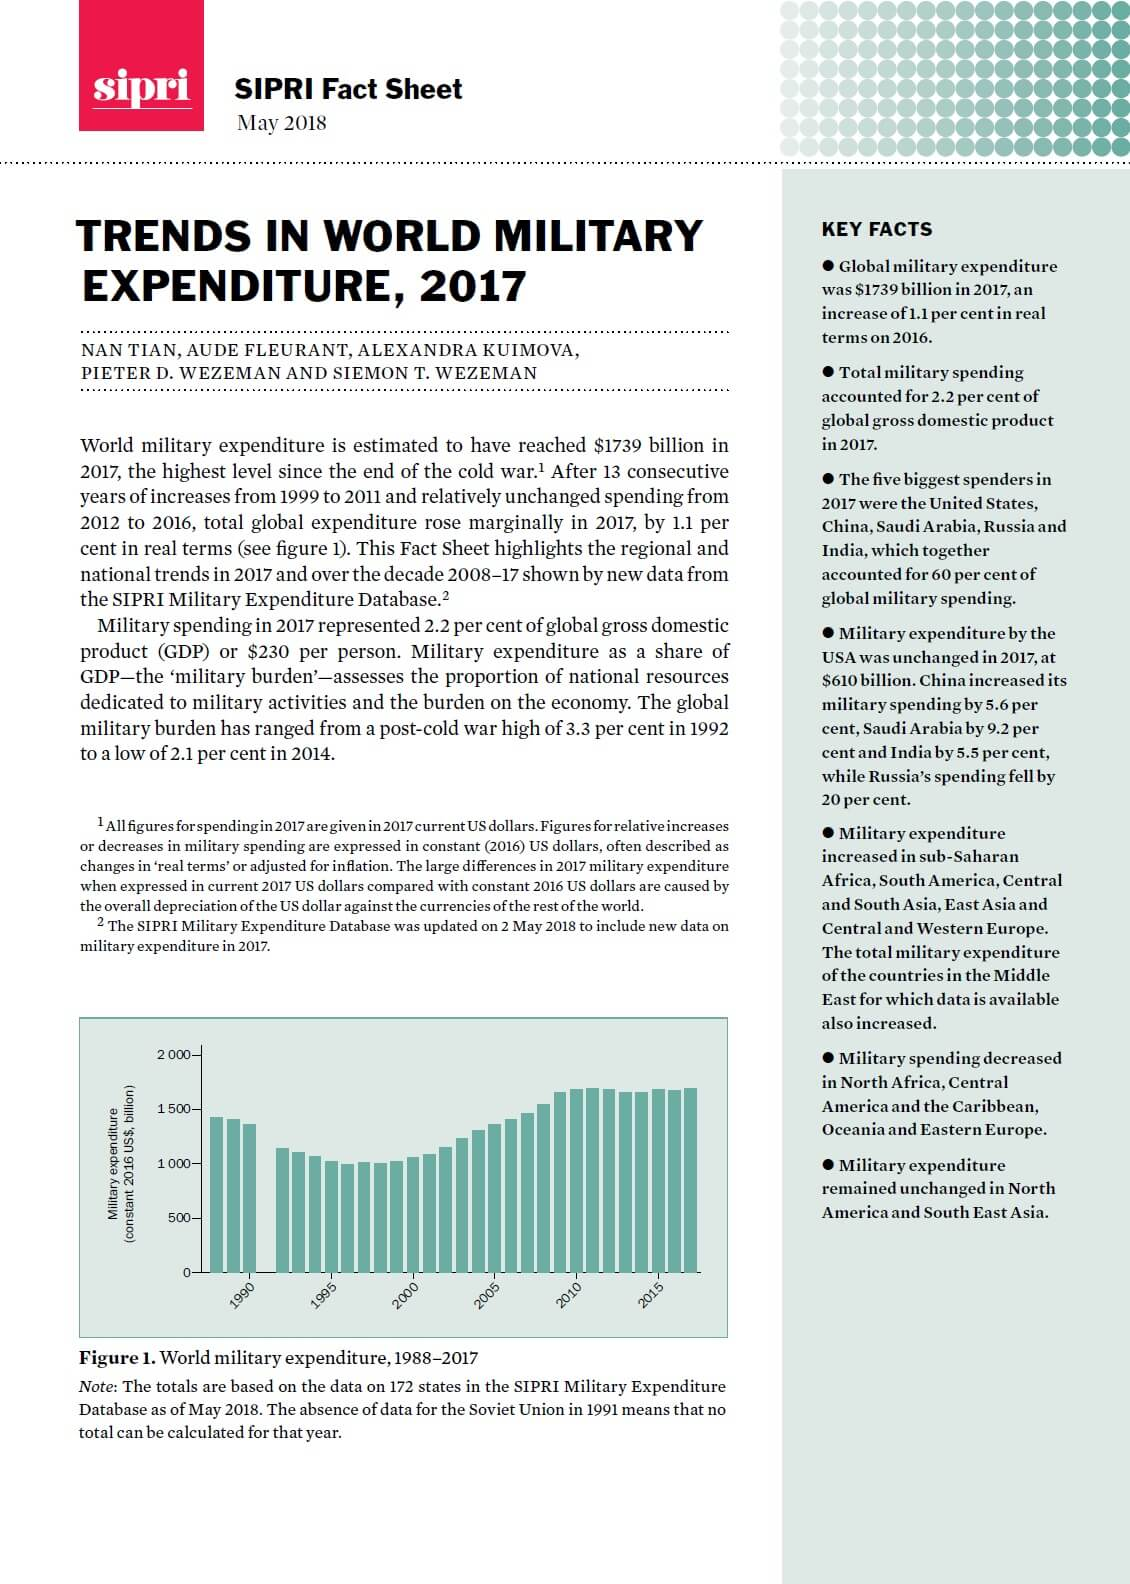 SIPRI-fact-sheet-mai-2018-milex